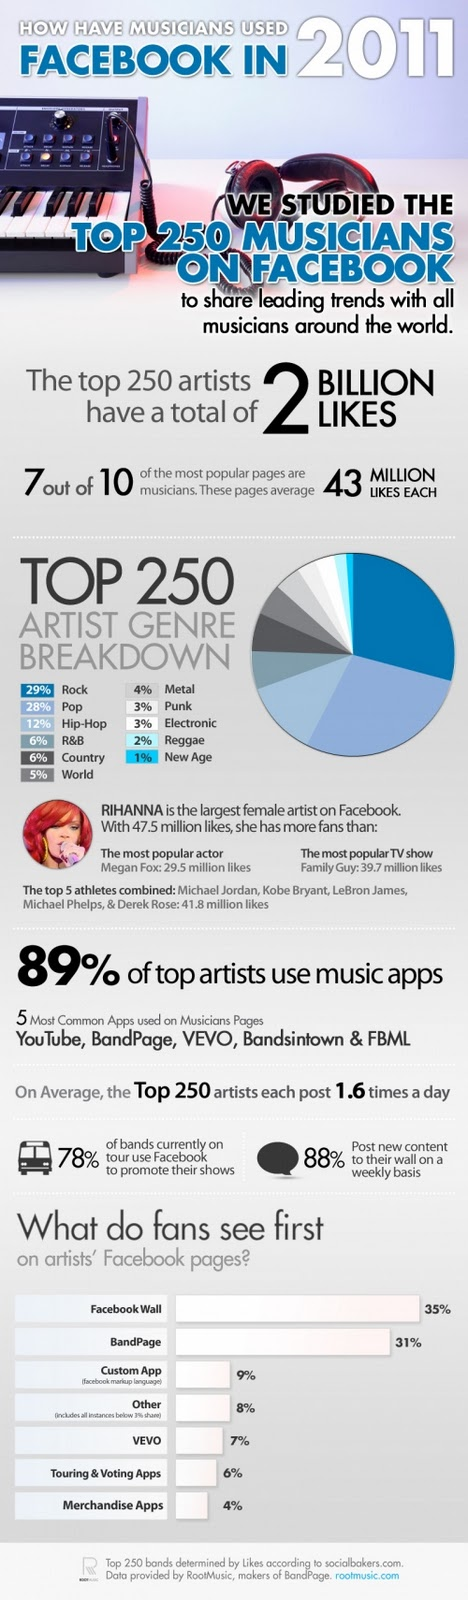 How Musicians Use Facebook image from Bobby Owsinski's Music 3.0 blog